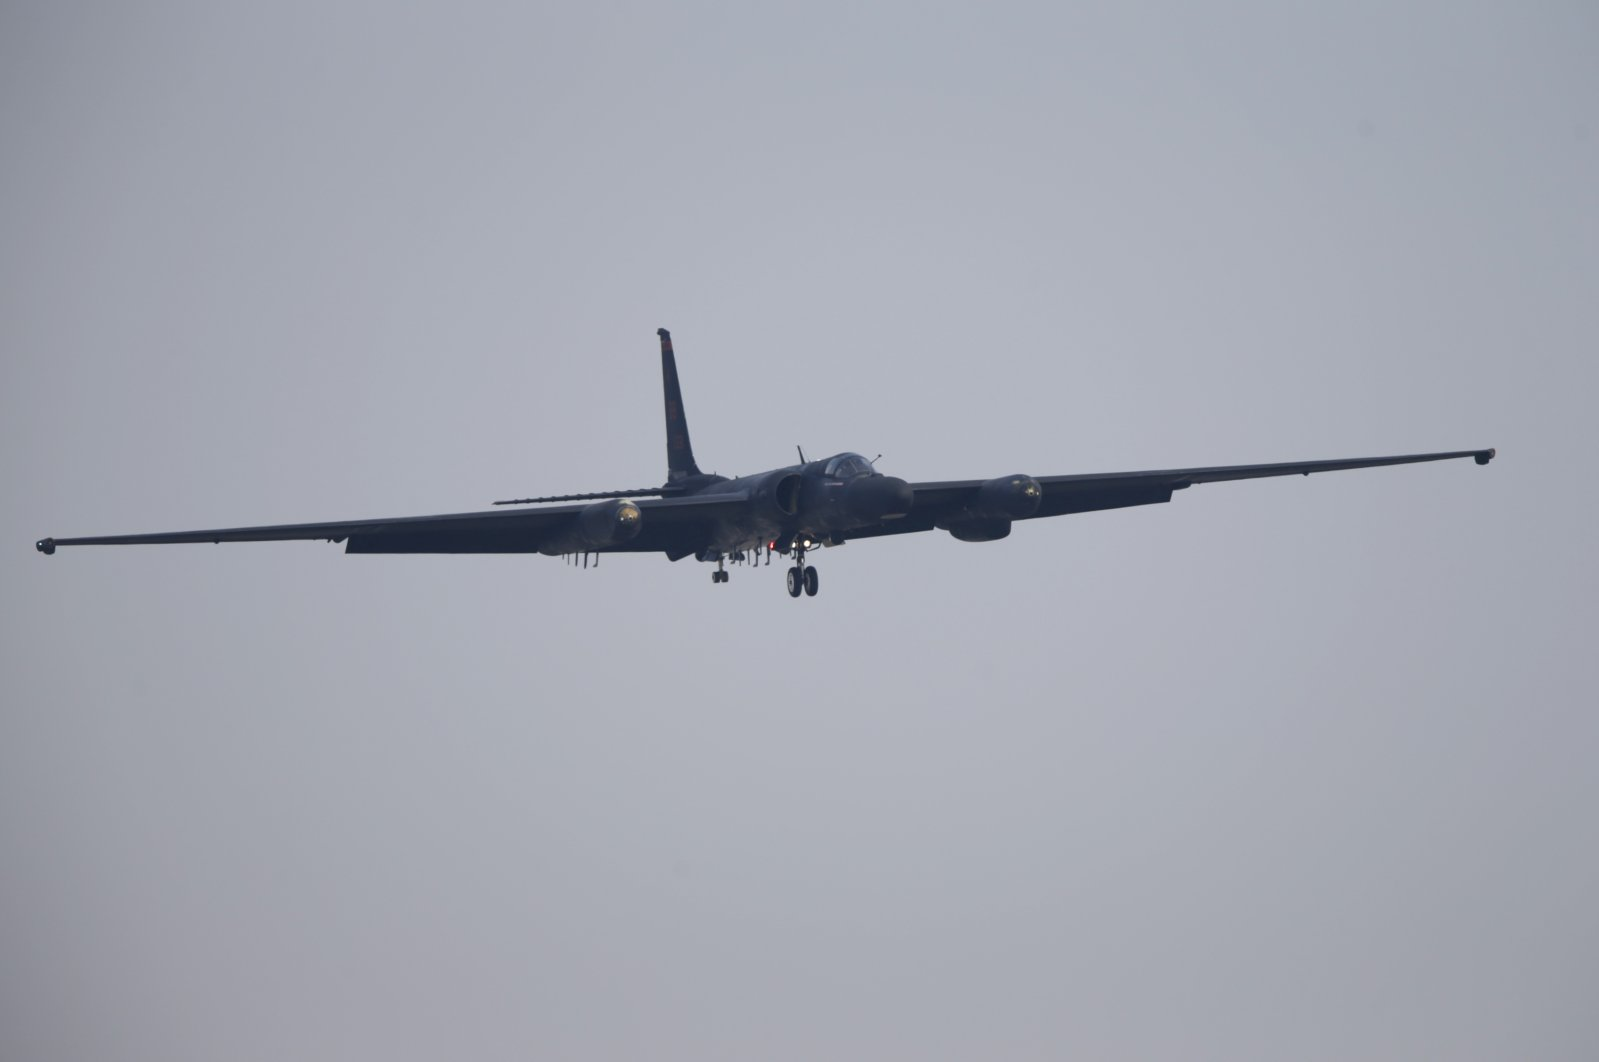 A U-2 reconnaissance plane belonging to the U.S. Air Force comes in for a landing at a U.S. Air Force base in Osan, south of Seoul, April 3, 2013. (Reuters Photo)